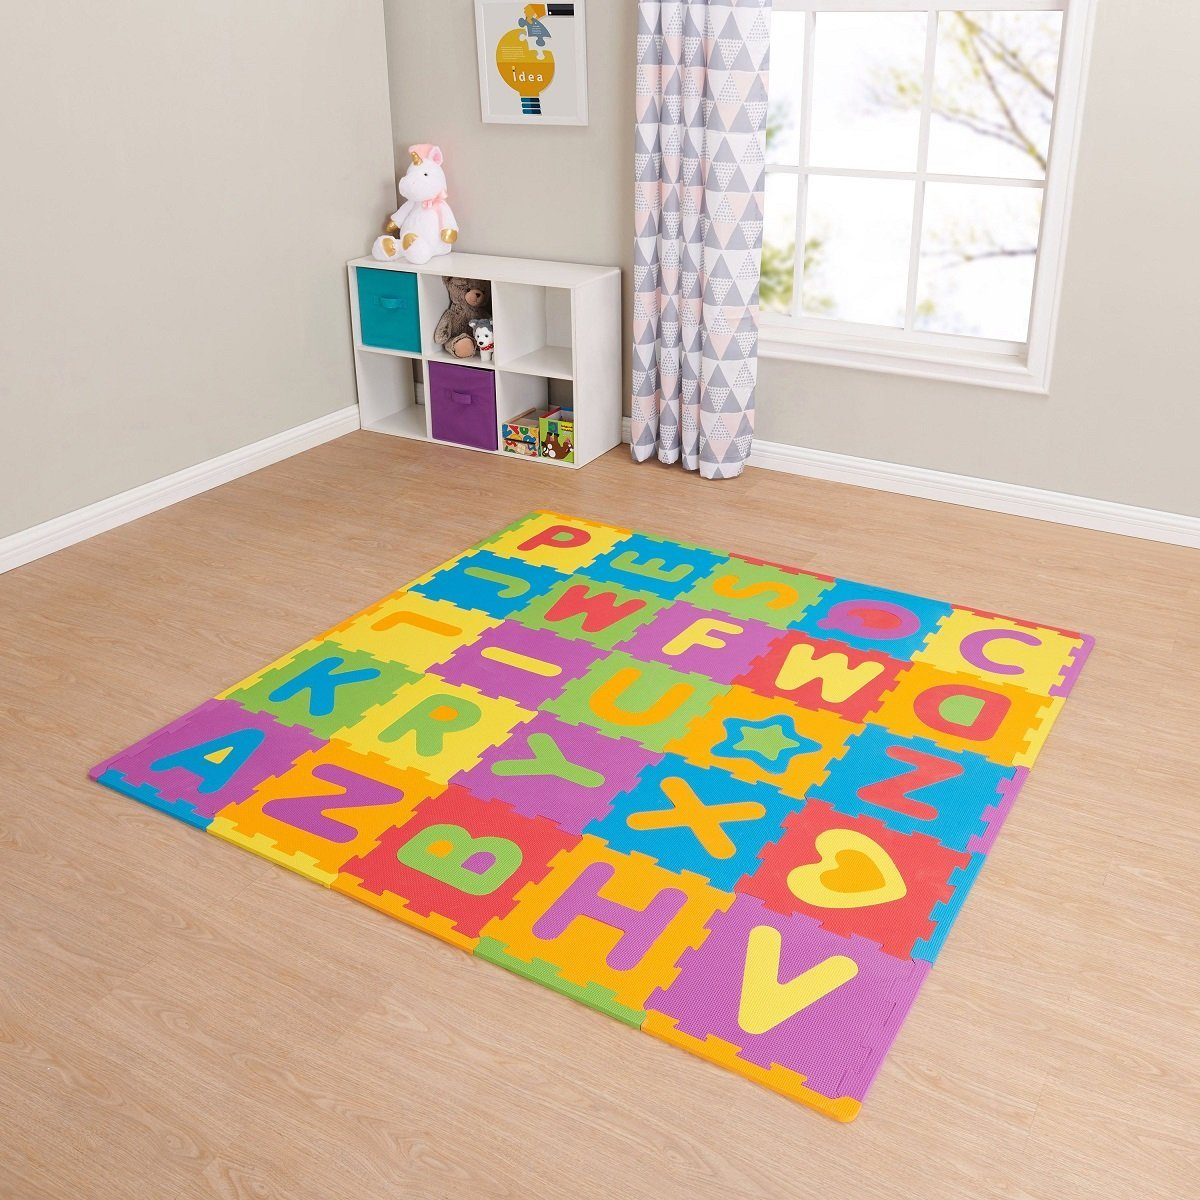 Perfect foam mat to set up a child's play area in a family room, basement, or other part of your home.